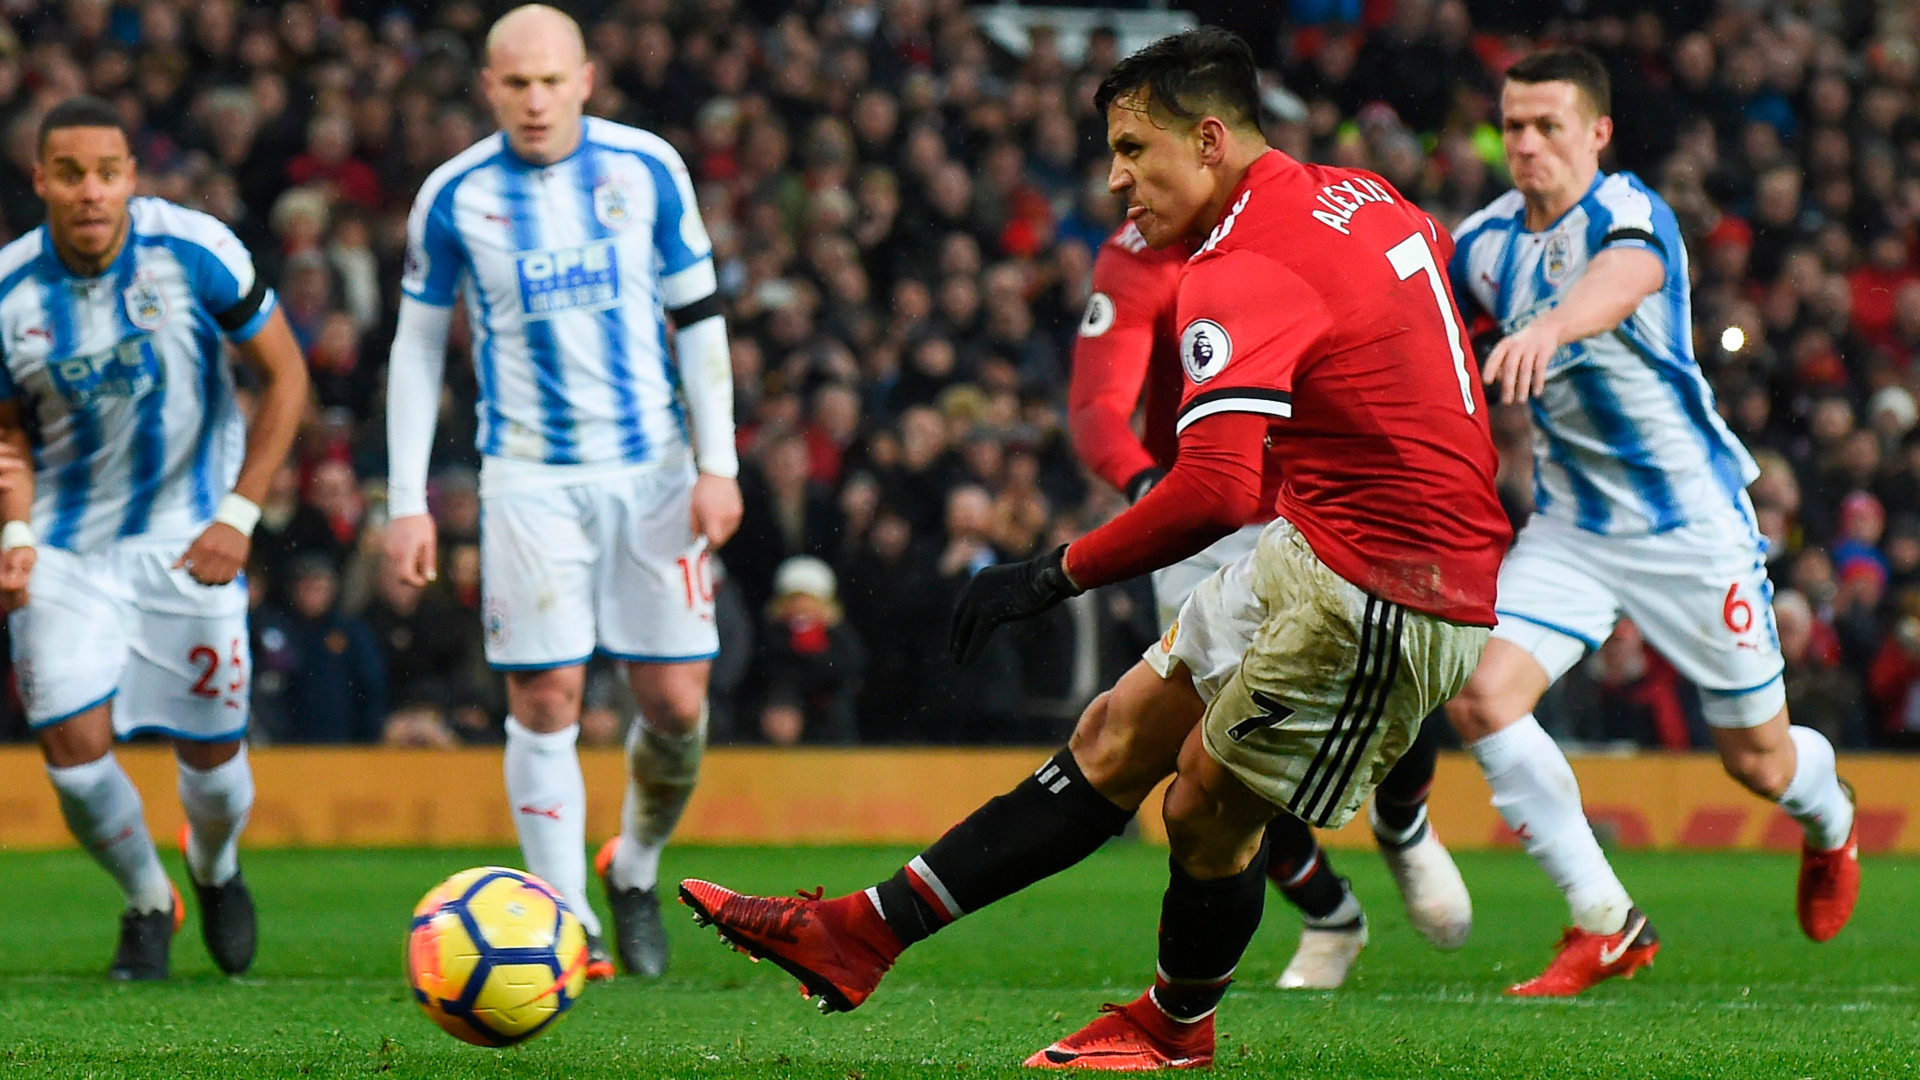 Alexis could help Man Utd reach Champions League final – Macari